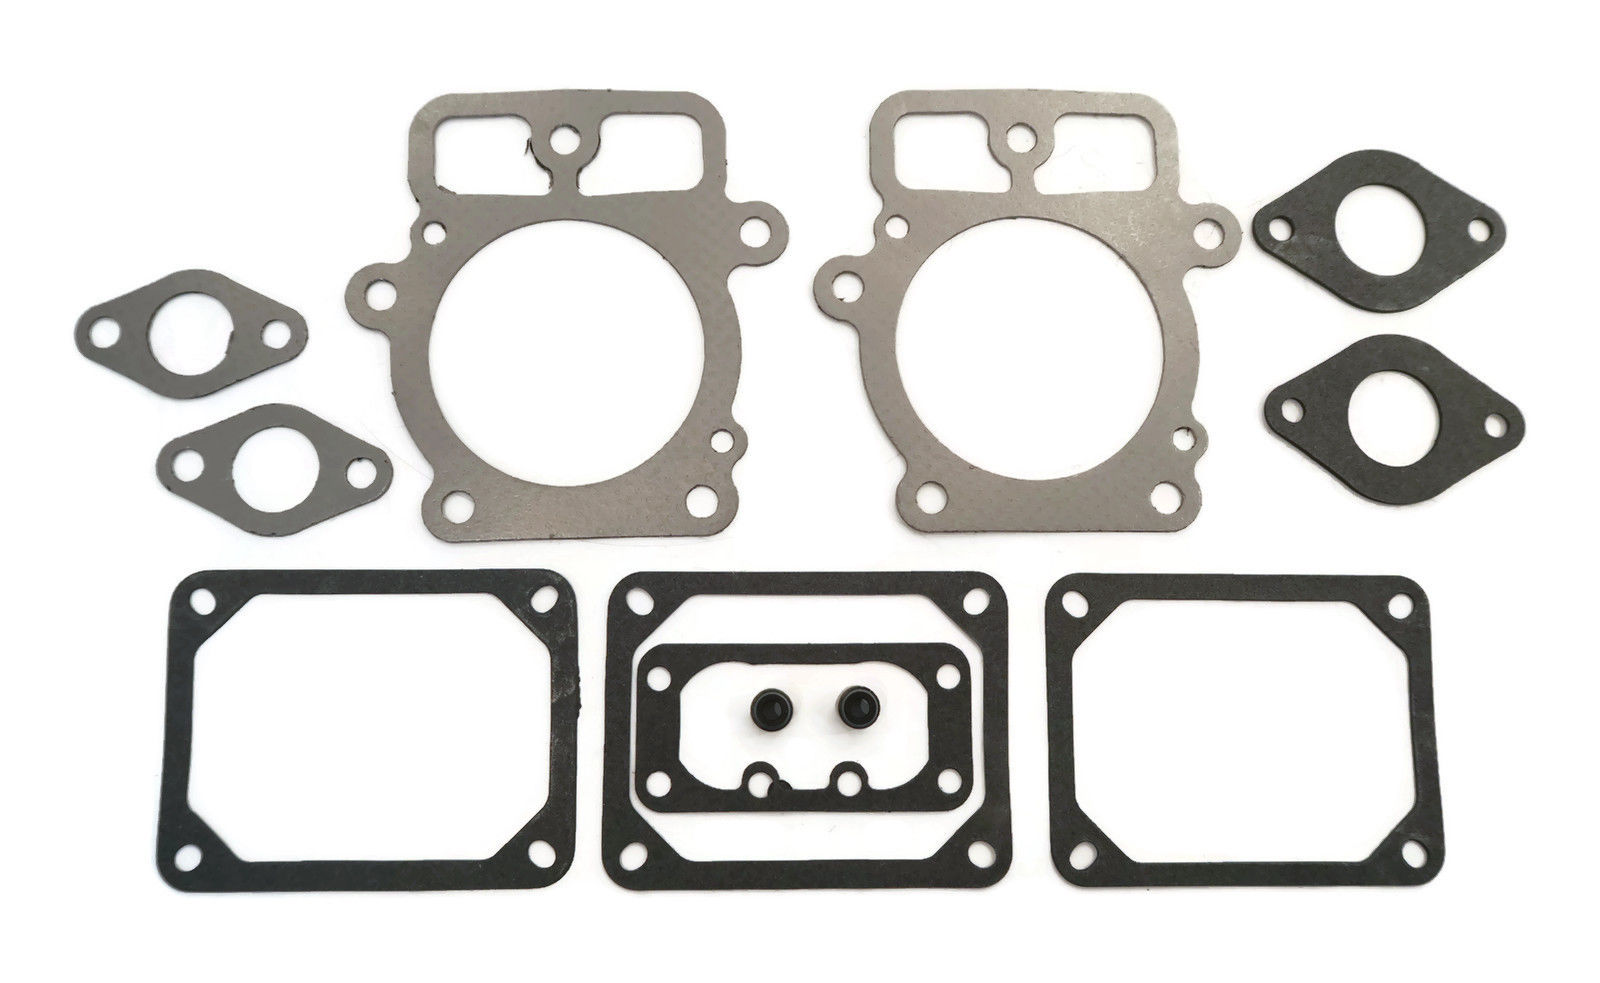 VALVE GASKET SET KIT Fits 1999 Electrolux 9178B99 9187A99 9209A99 Lawn Tractor by The ROP Shop by The ROP Shop